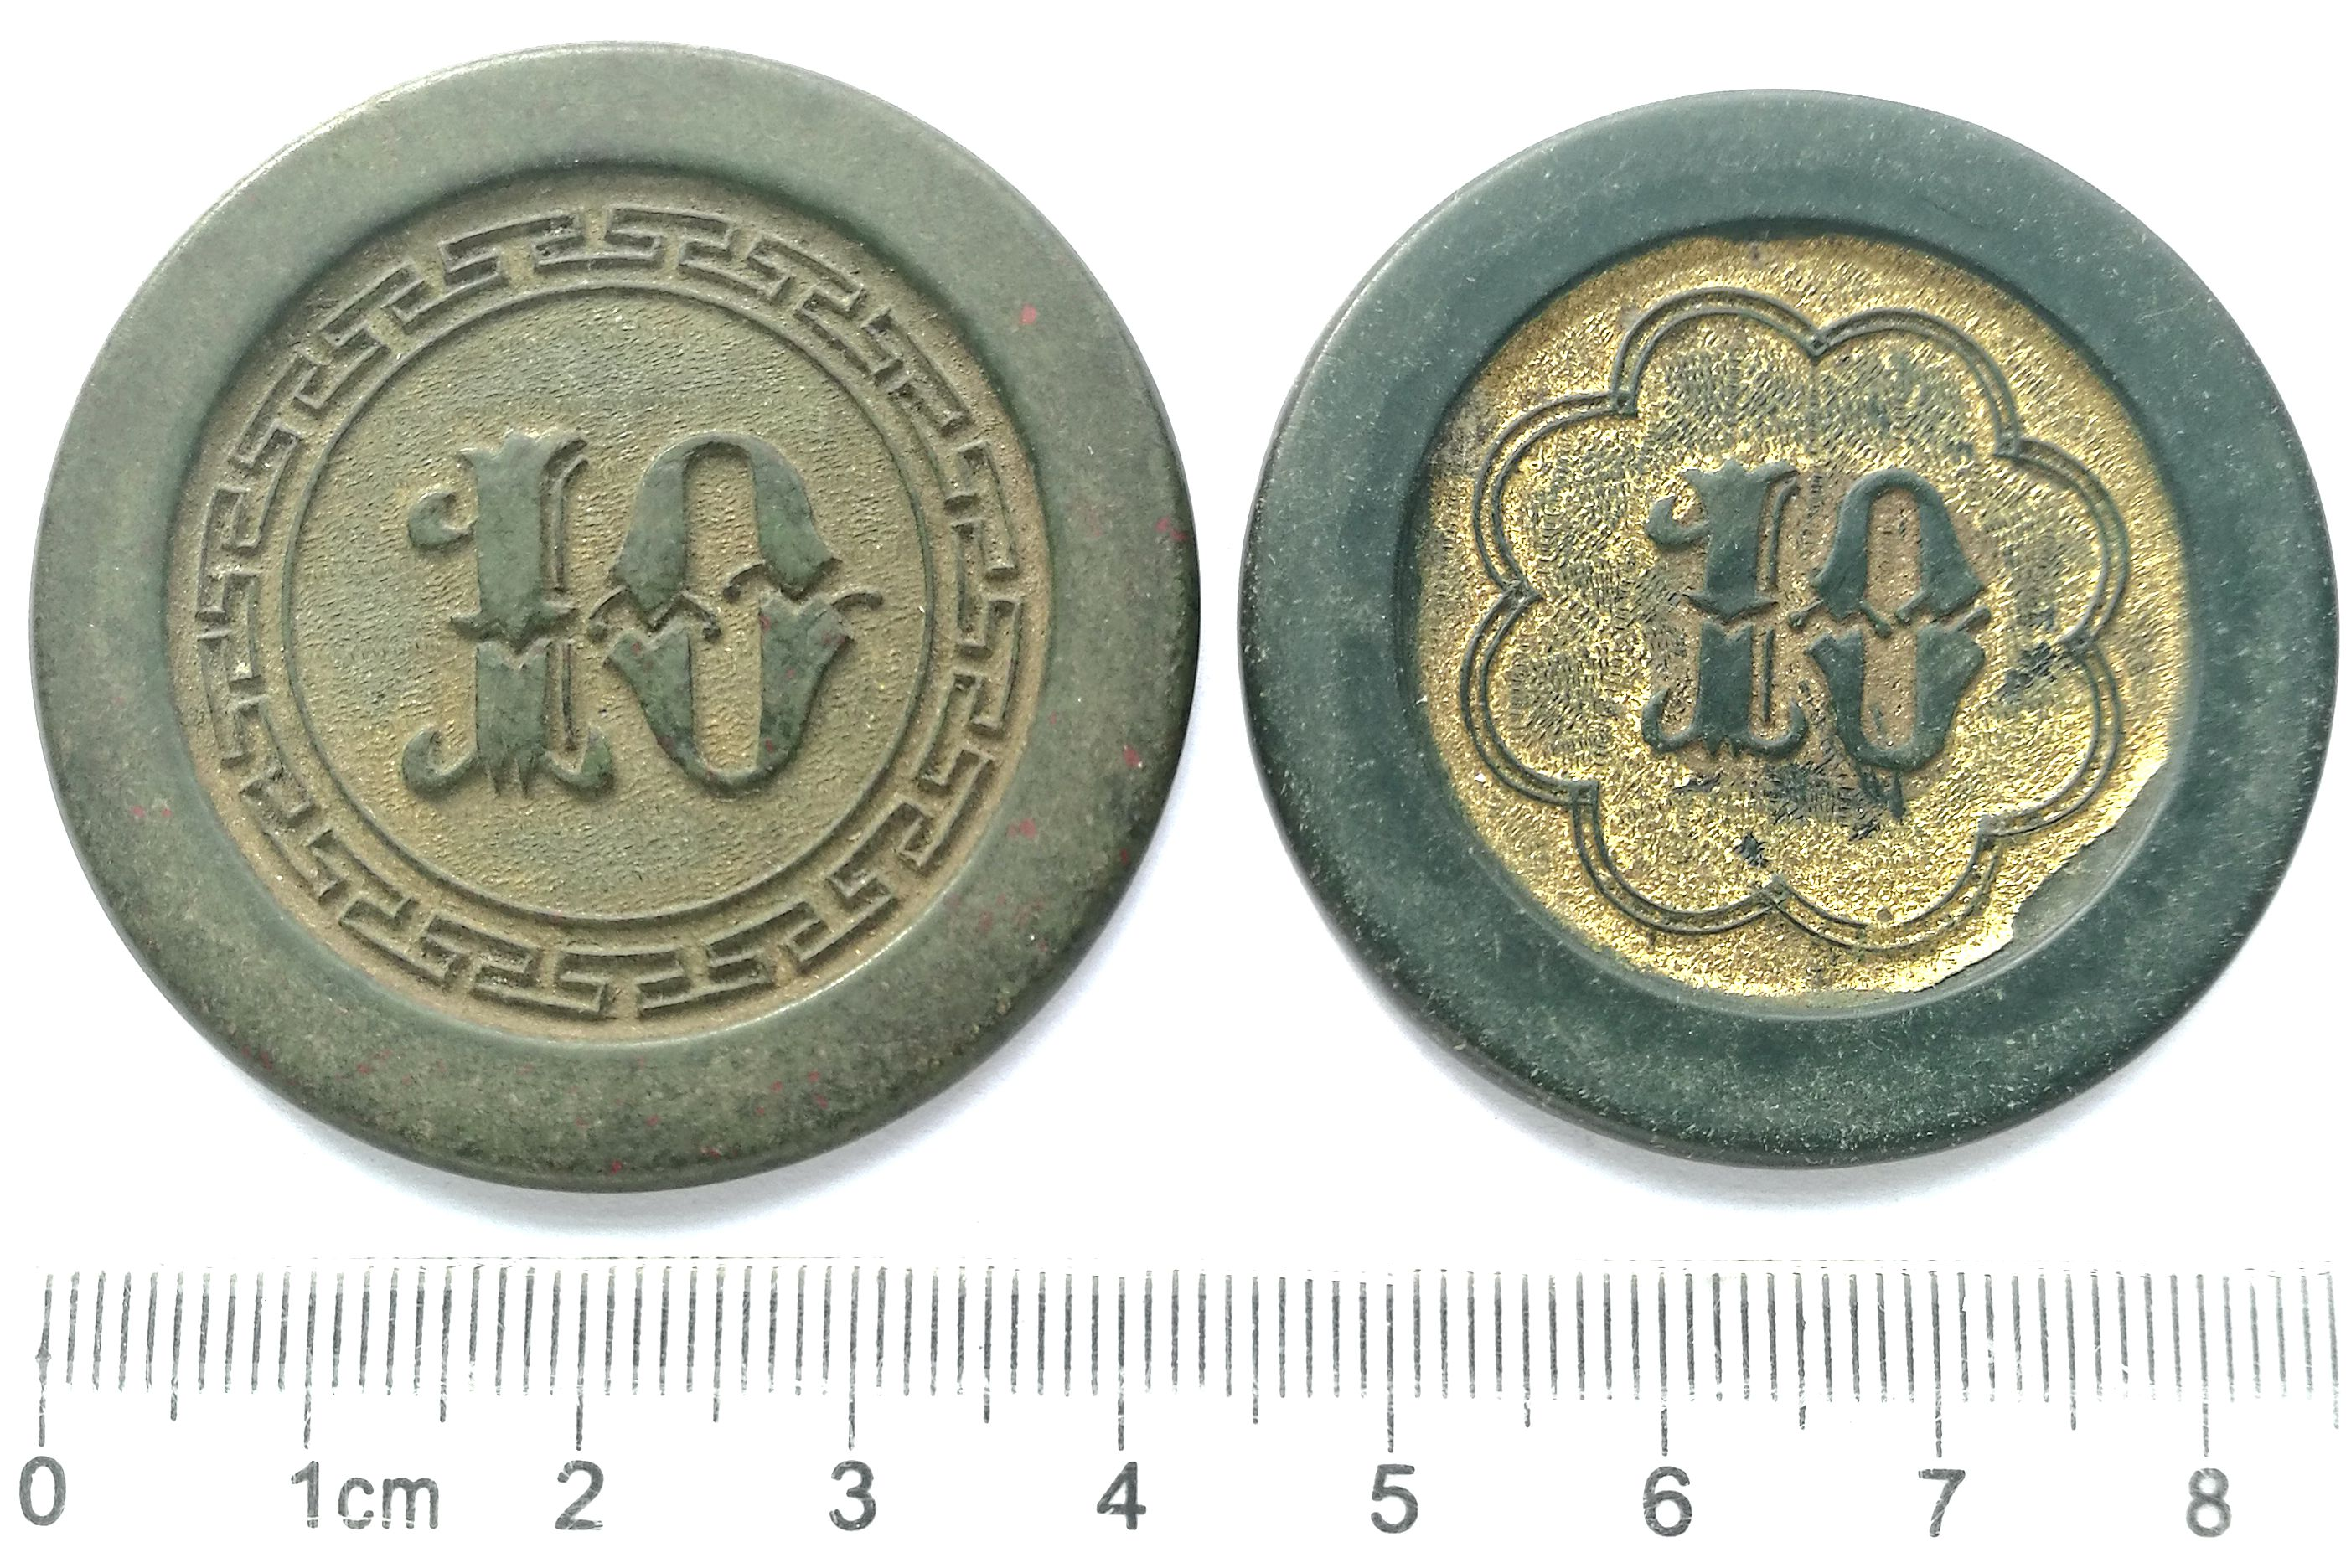 BT631, Shanghai Casino Tokens, Two Diff. 10 Dollars, (Bakelite) 1930's